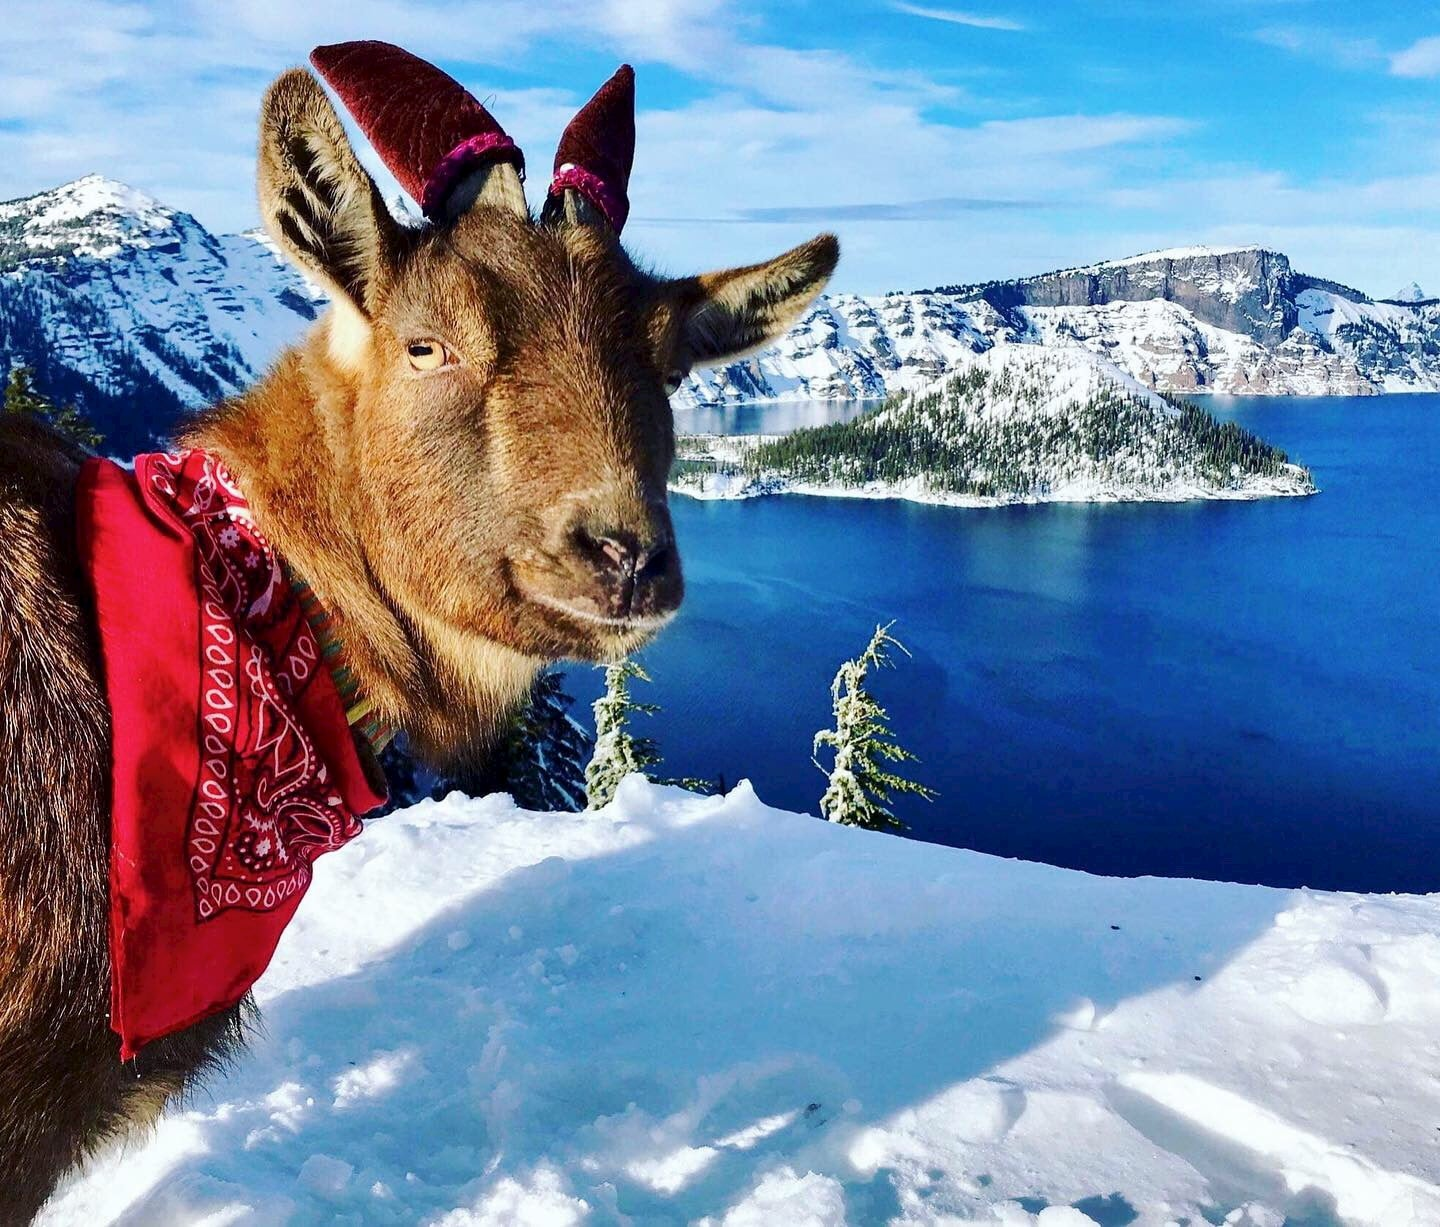 Small goat stnading in front of a snow covered crater lake.